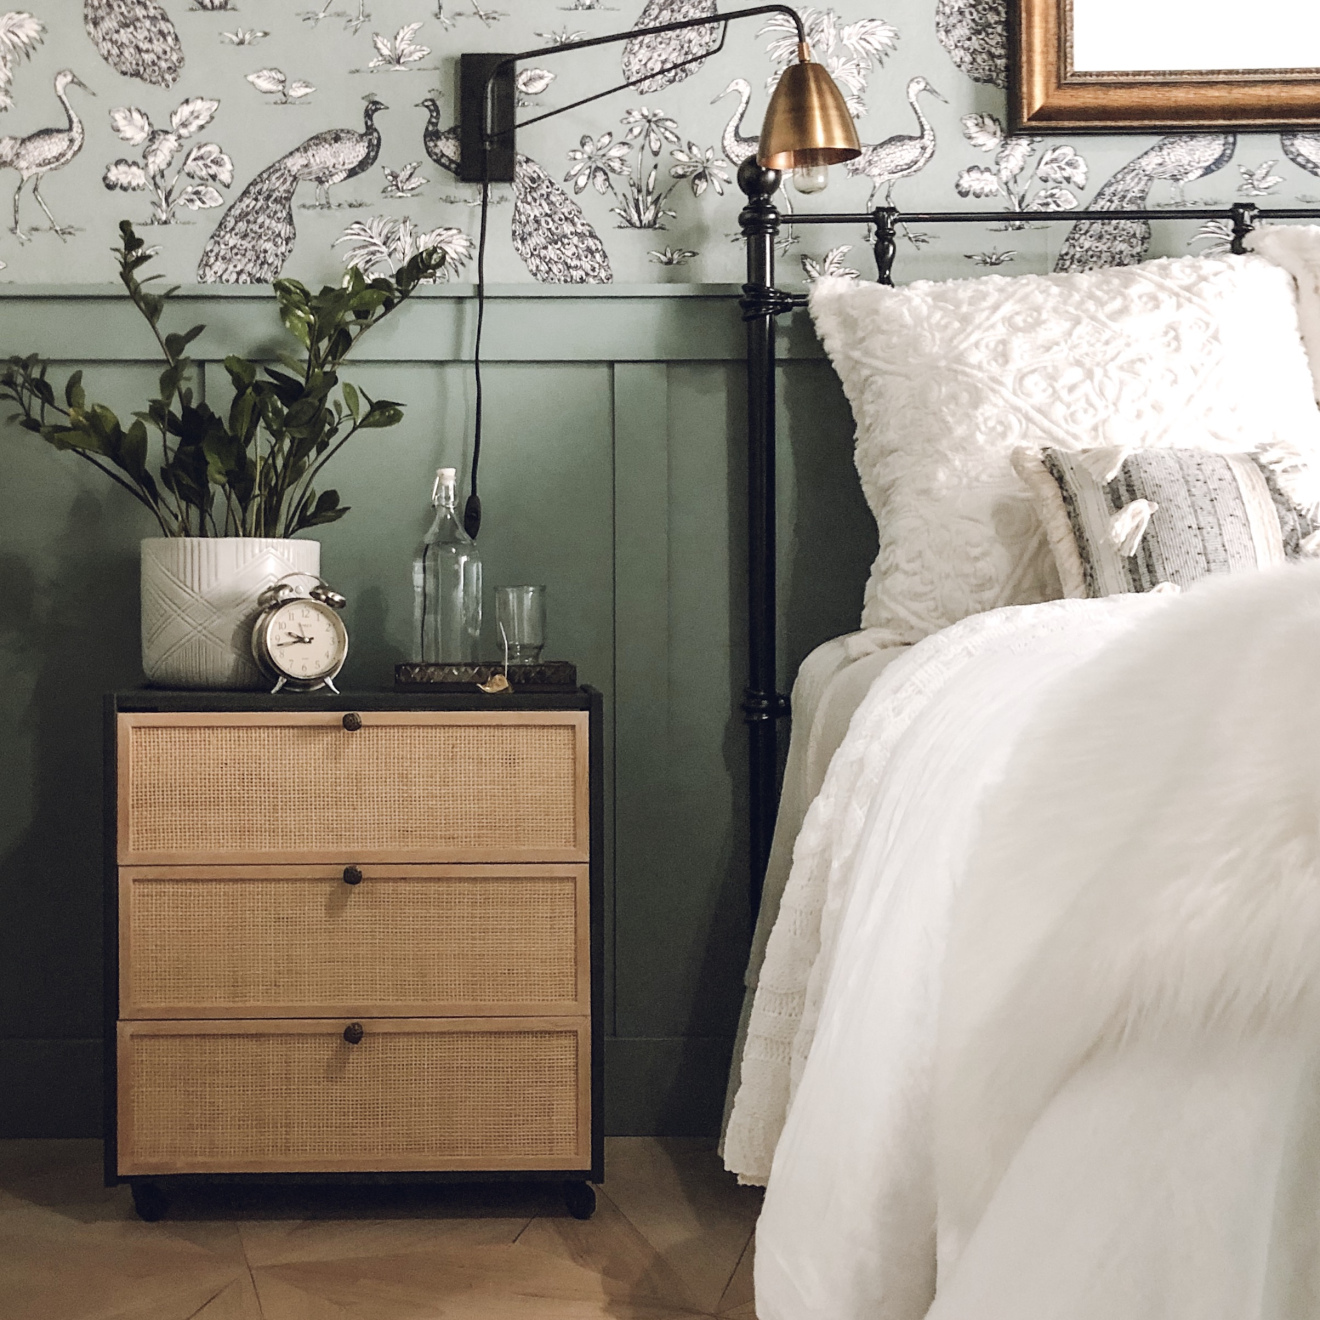 17 Ikea Rast Dresser Hacks Apartment Therapy